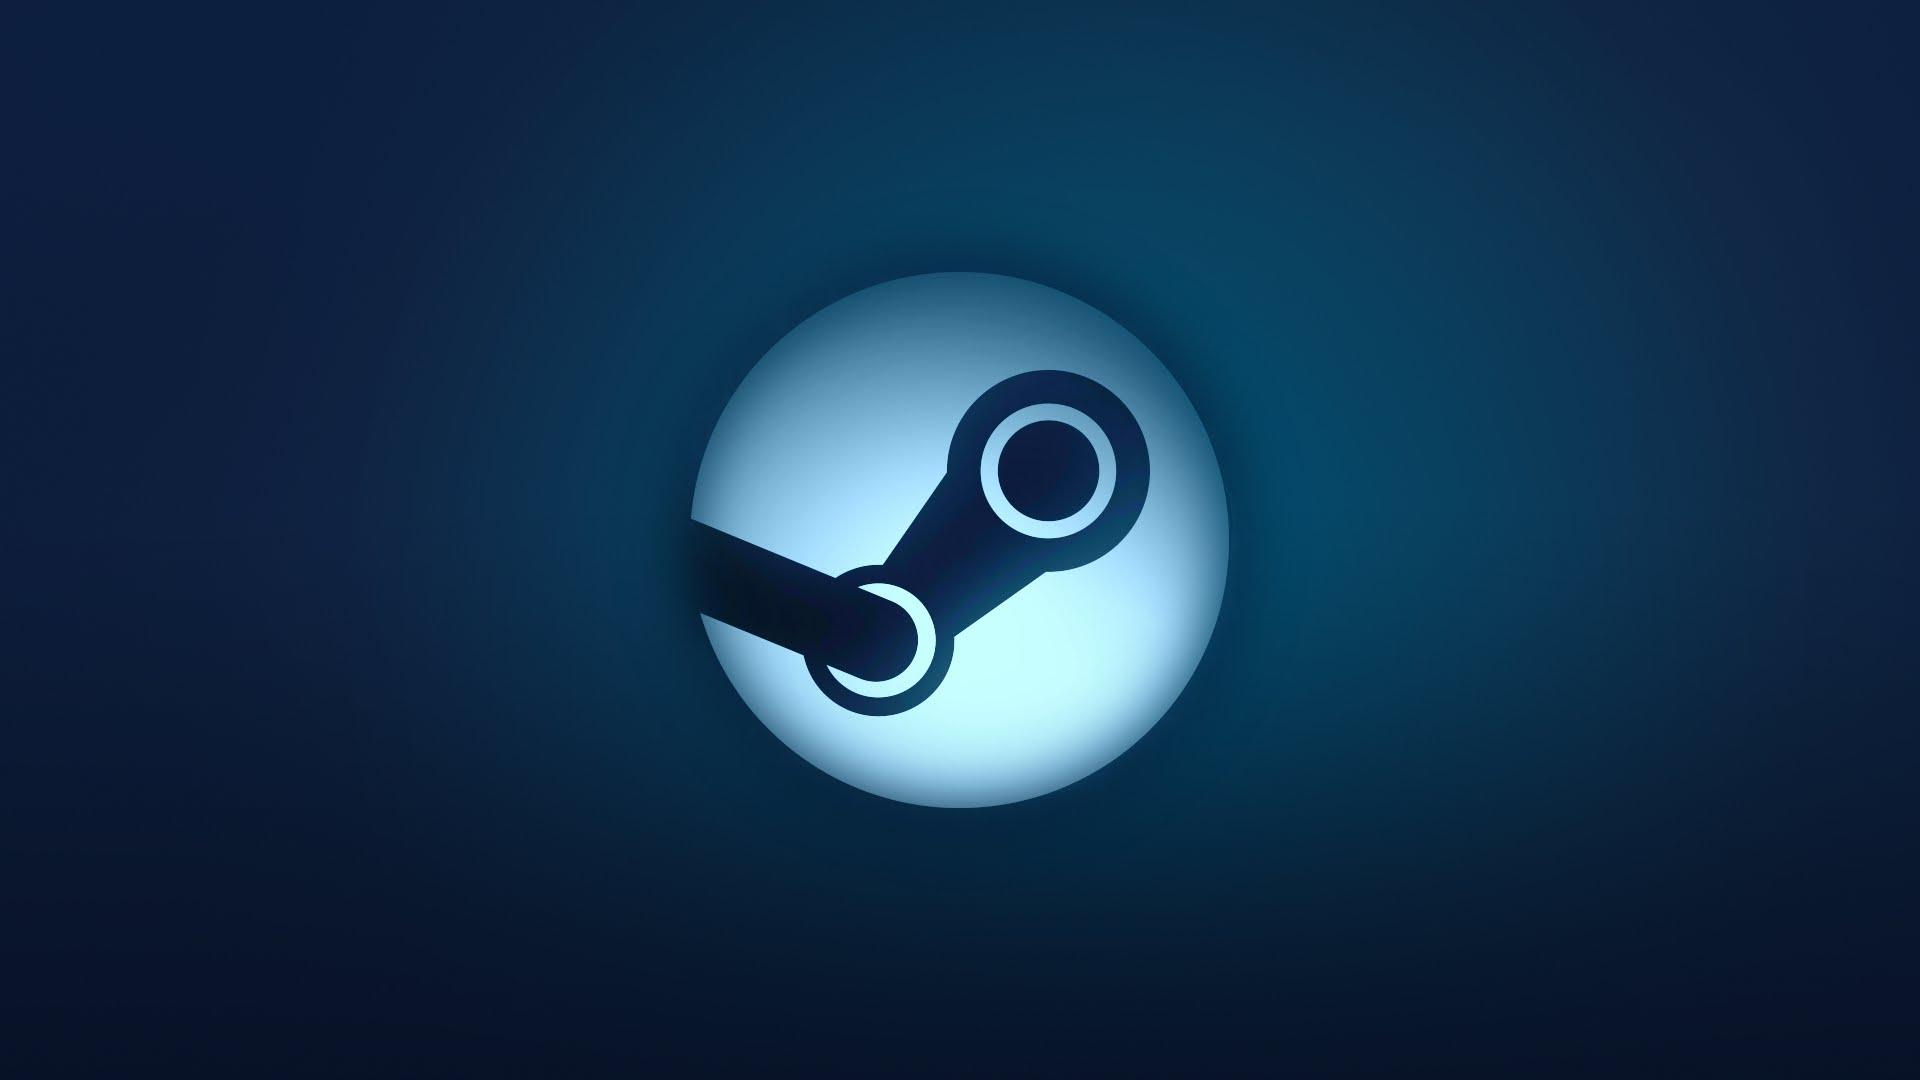 steam saldi logo